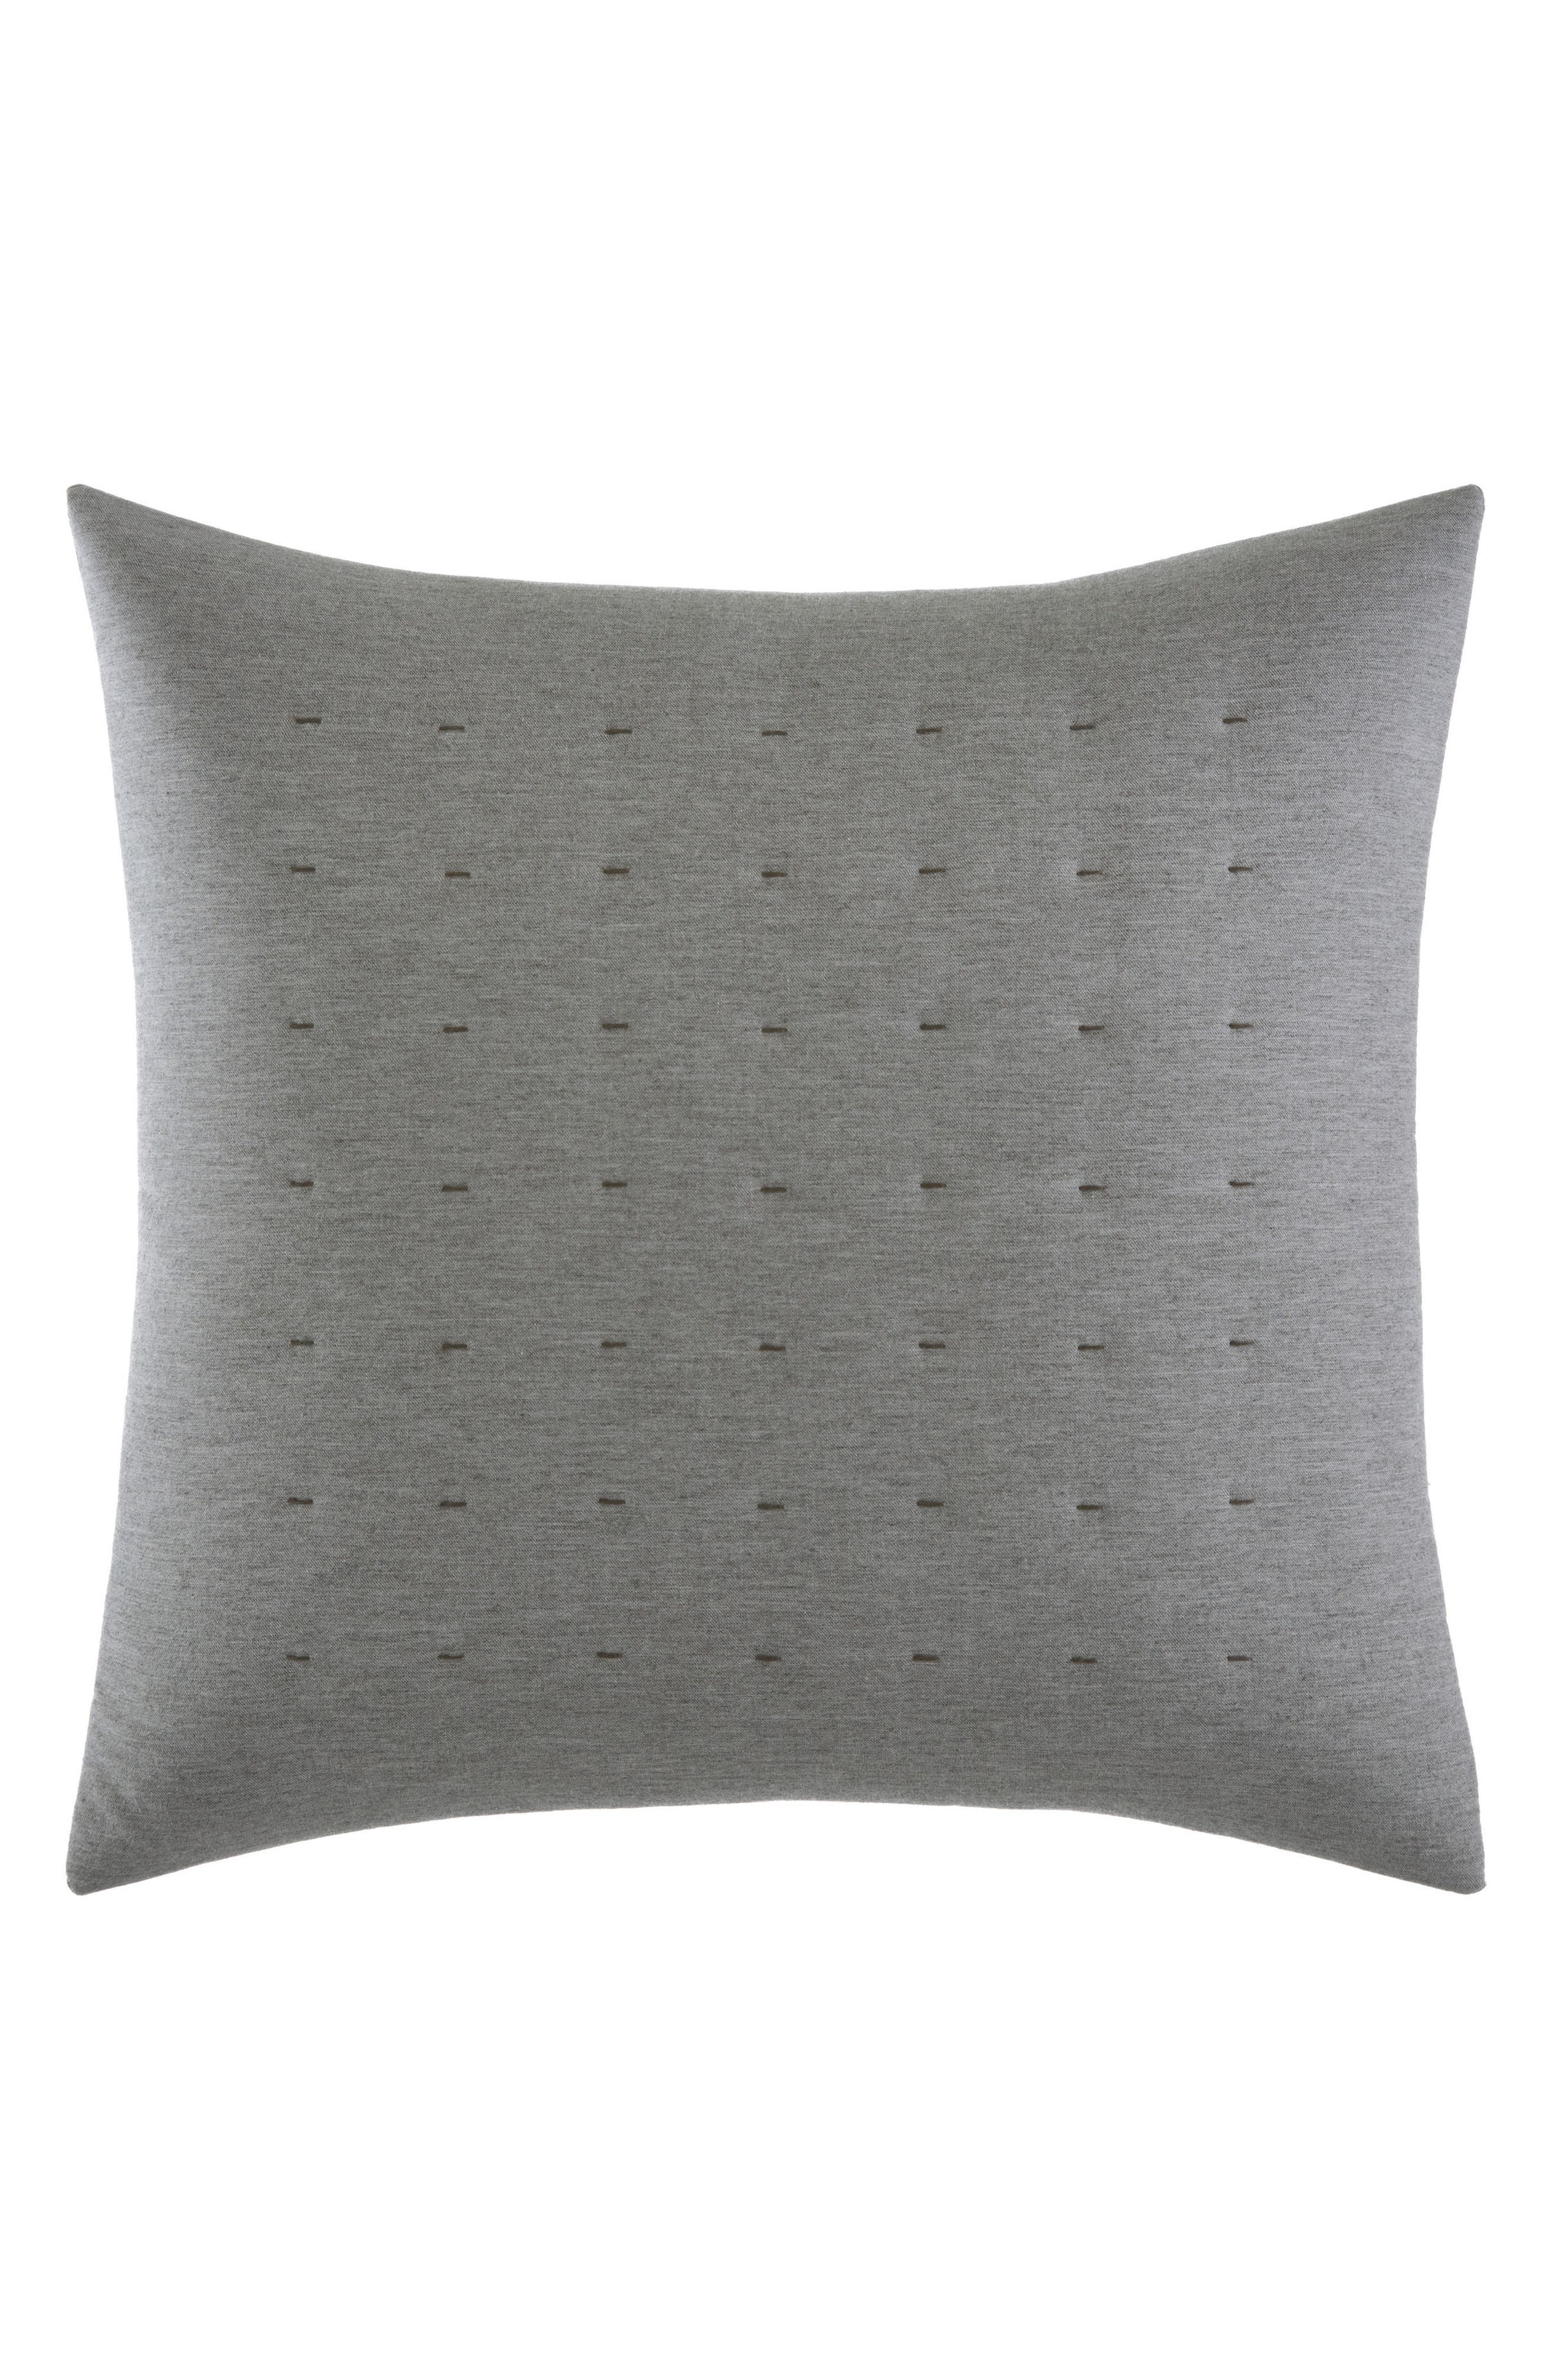 Vera Wang Tuille Accent Pillow